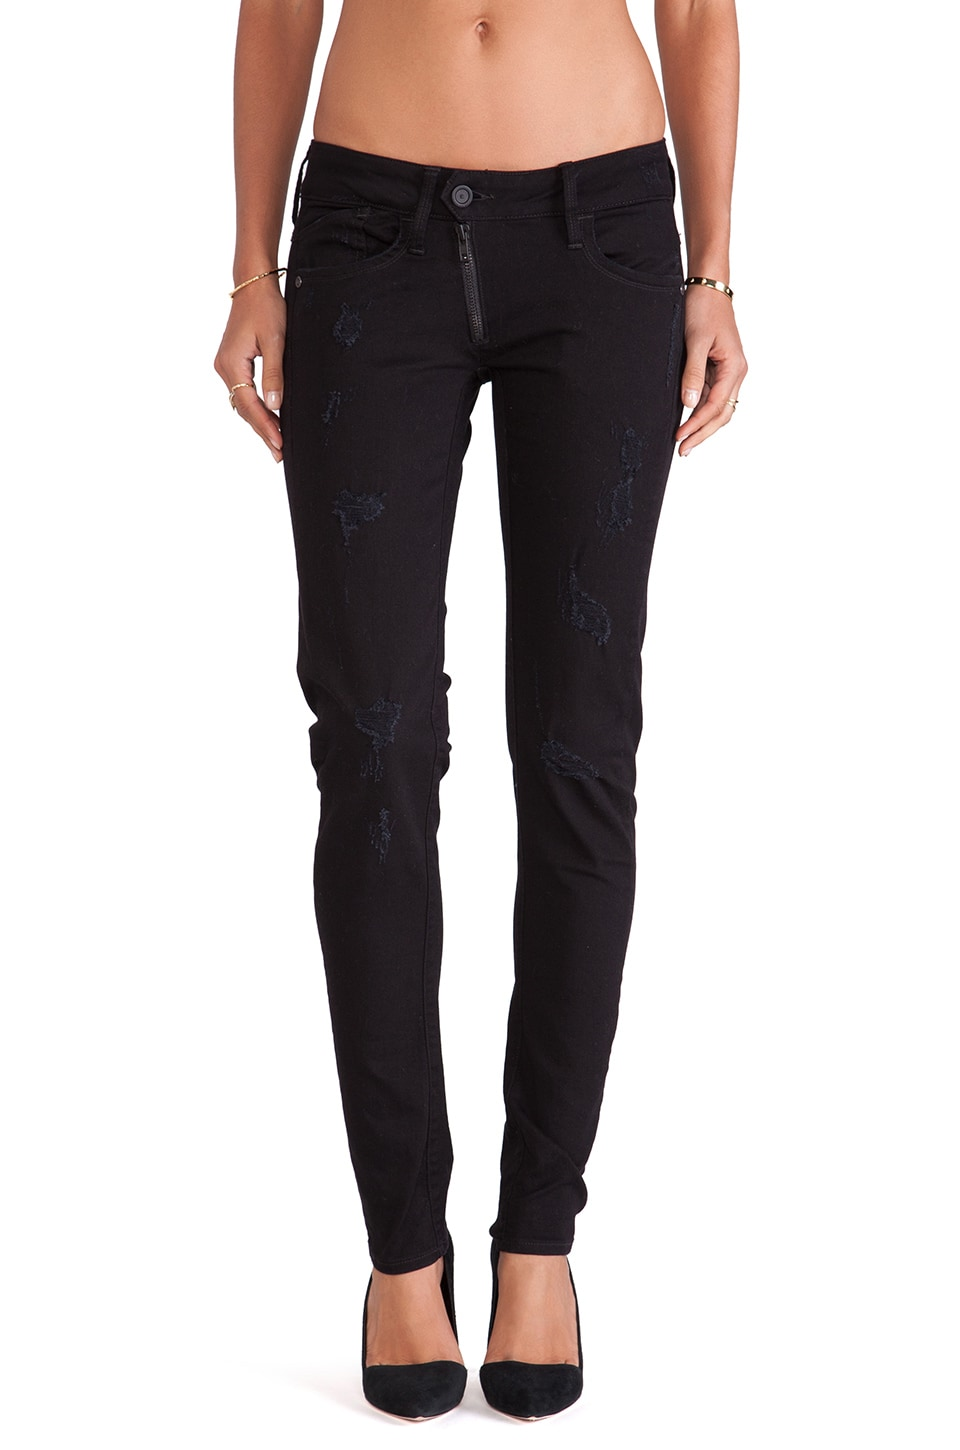 G-Star Lynn Zip Skinny Comfort Turner Black Denim Dark Aged Destroy